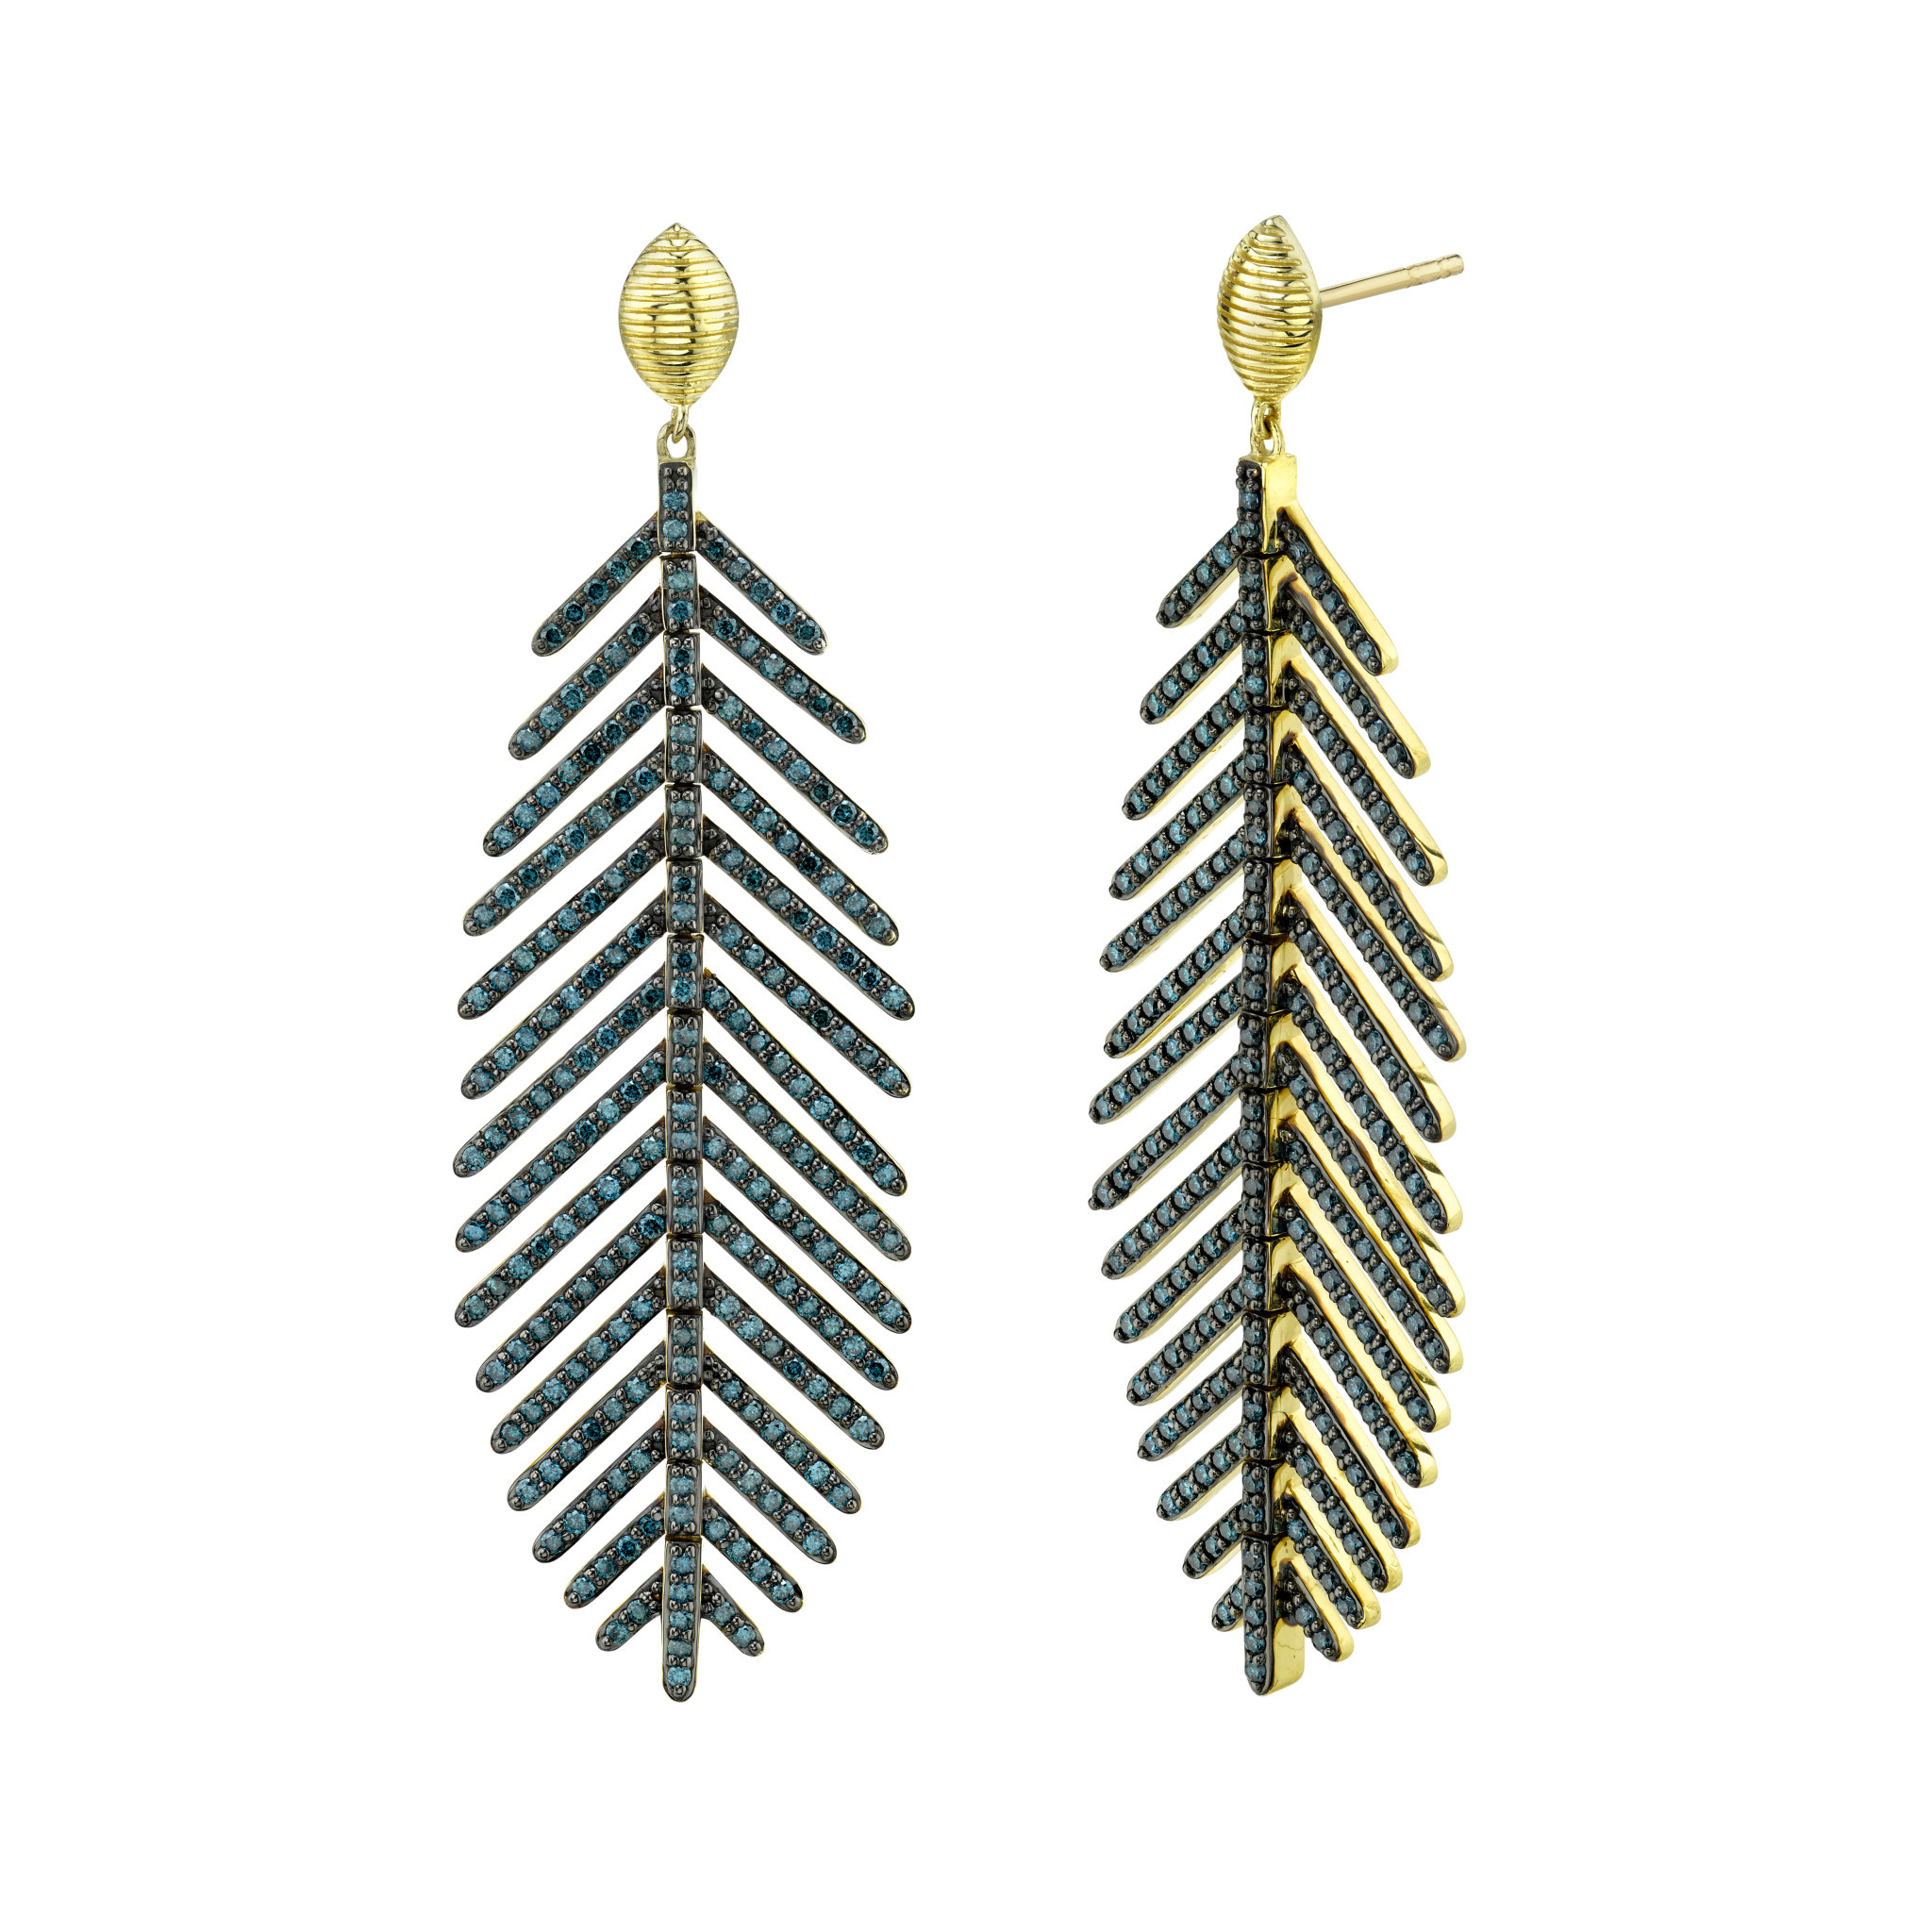 Medium Sized Feather Earring with Blue Diamond & Marquis Strie Top